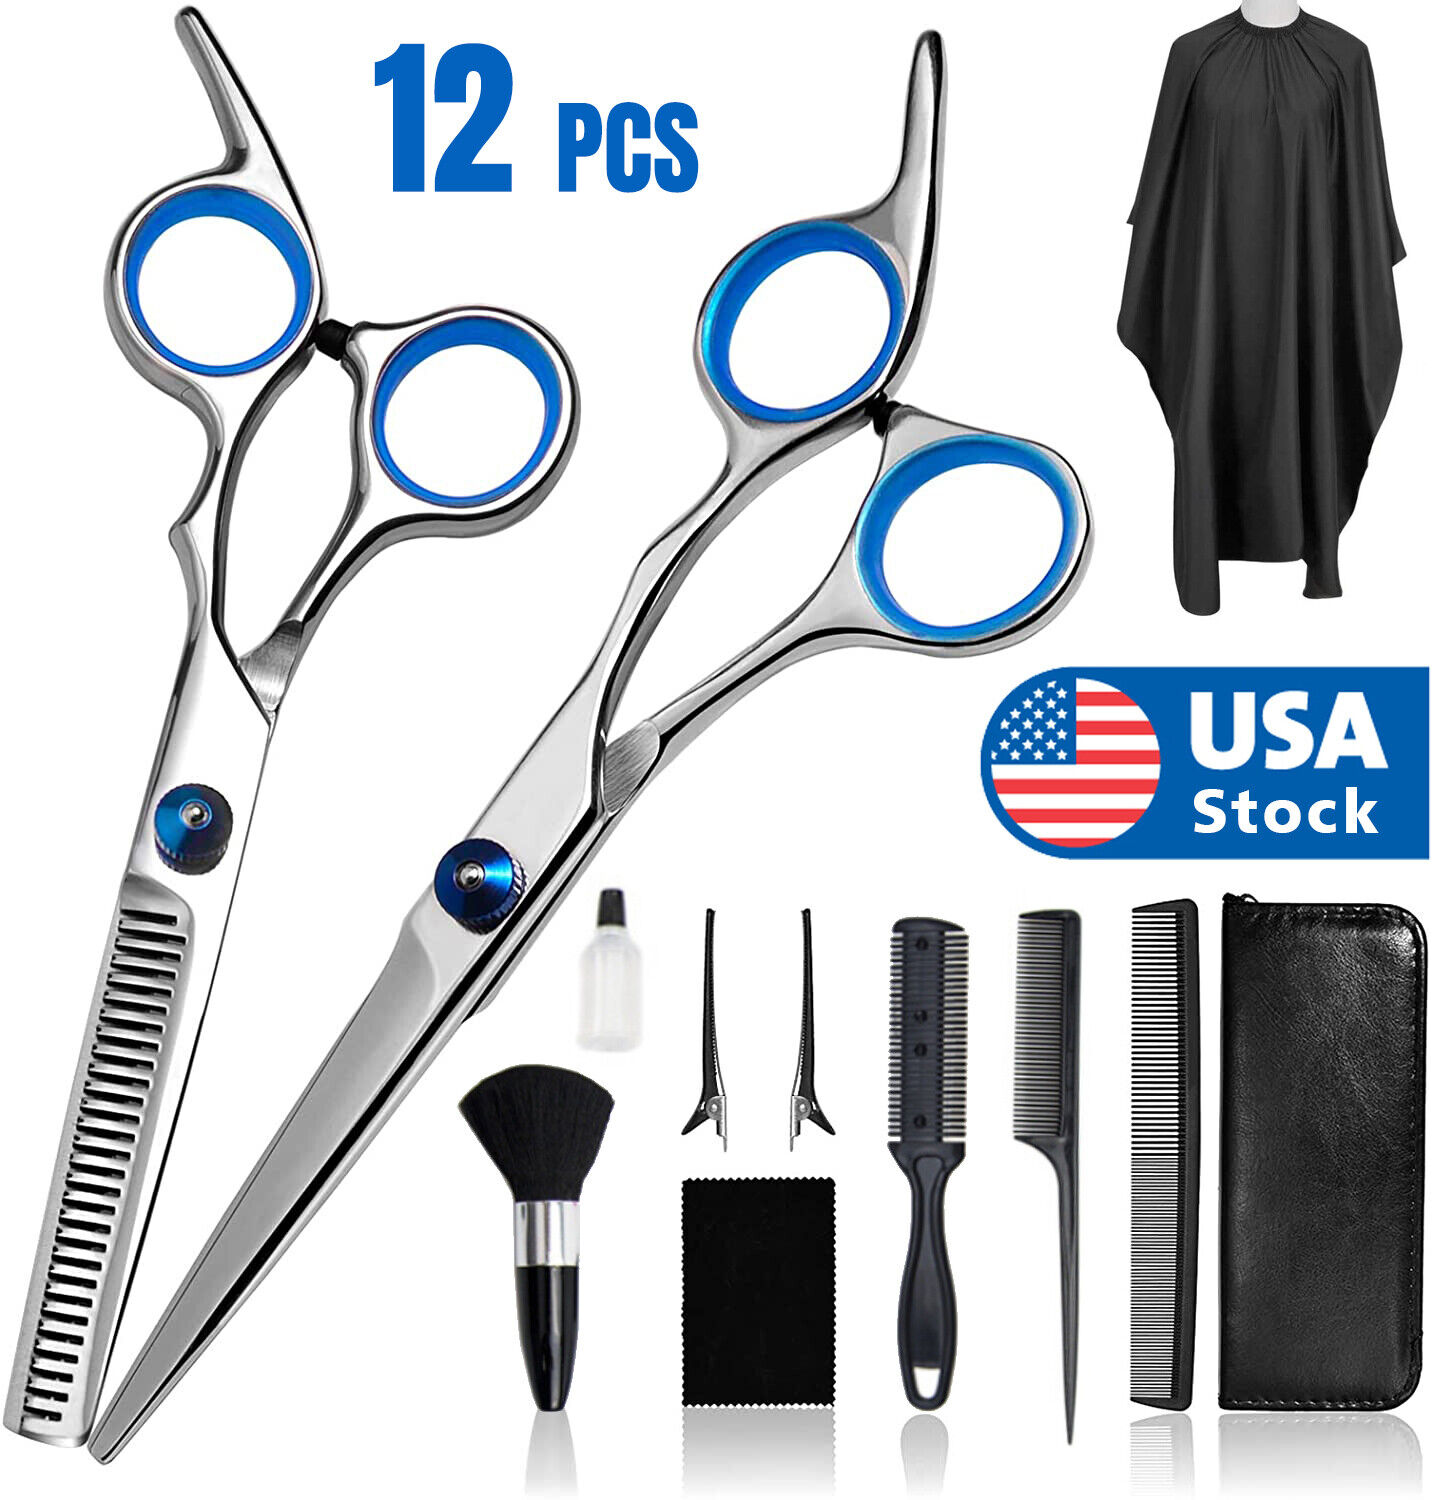 Professional Hair Cutting Thinning Scissors Barber Shears Ha